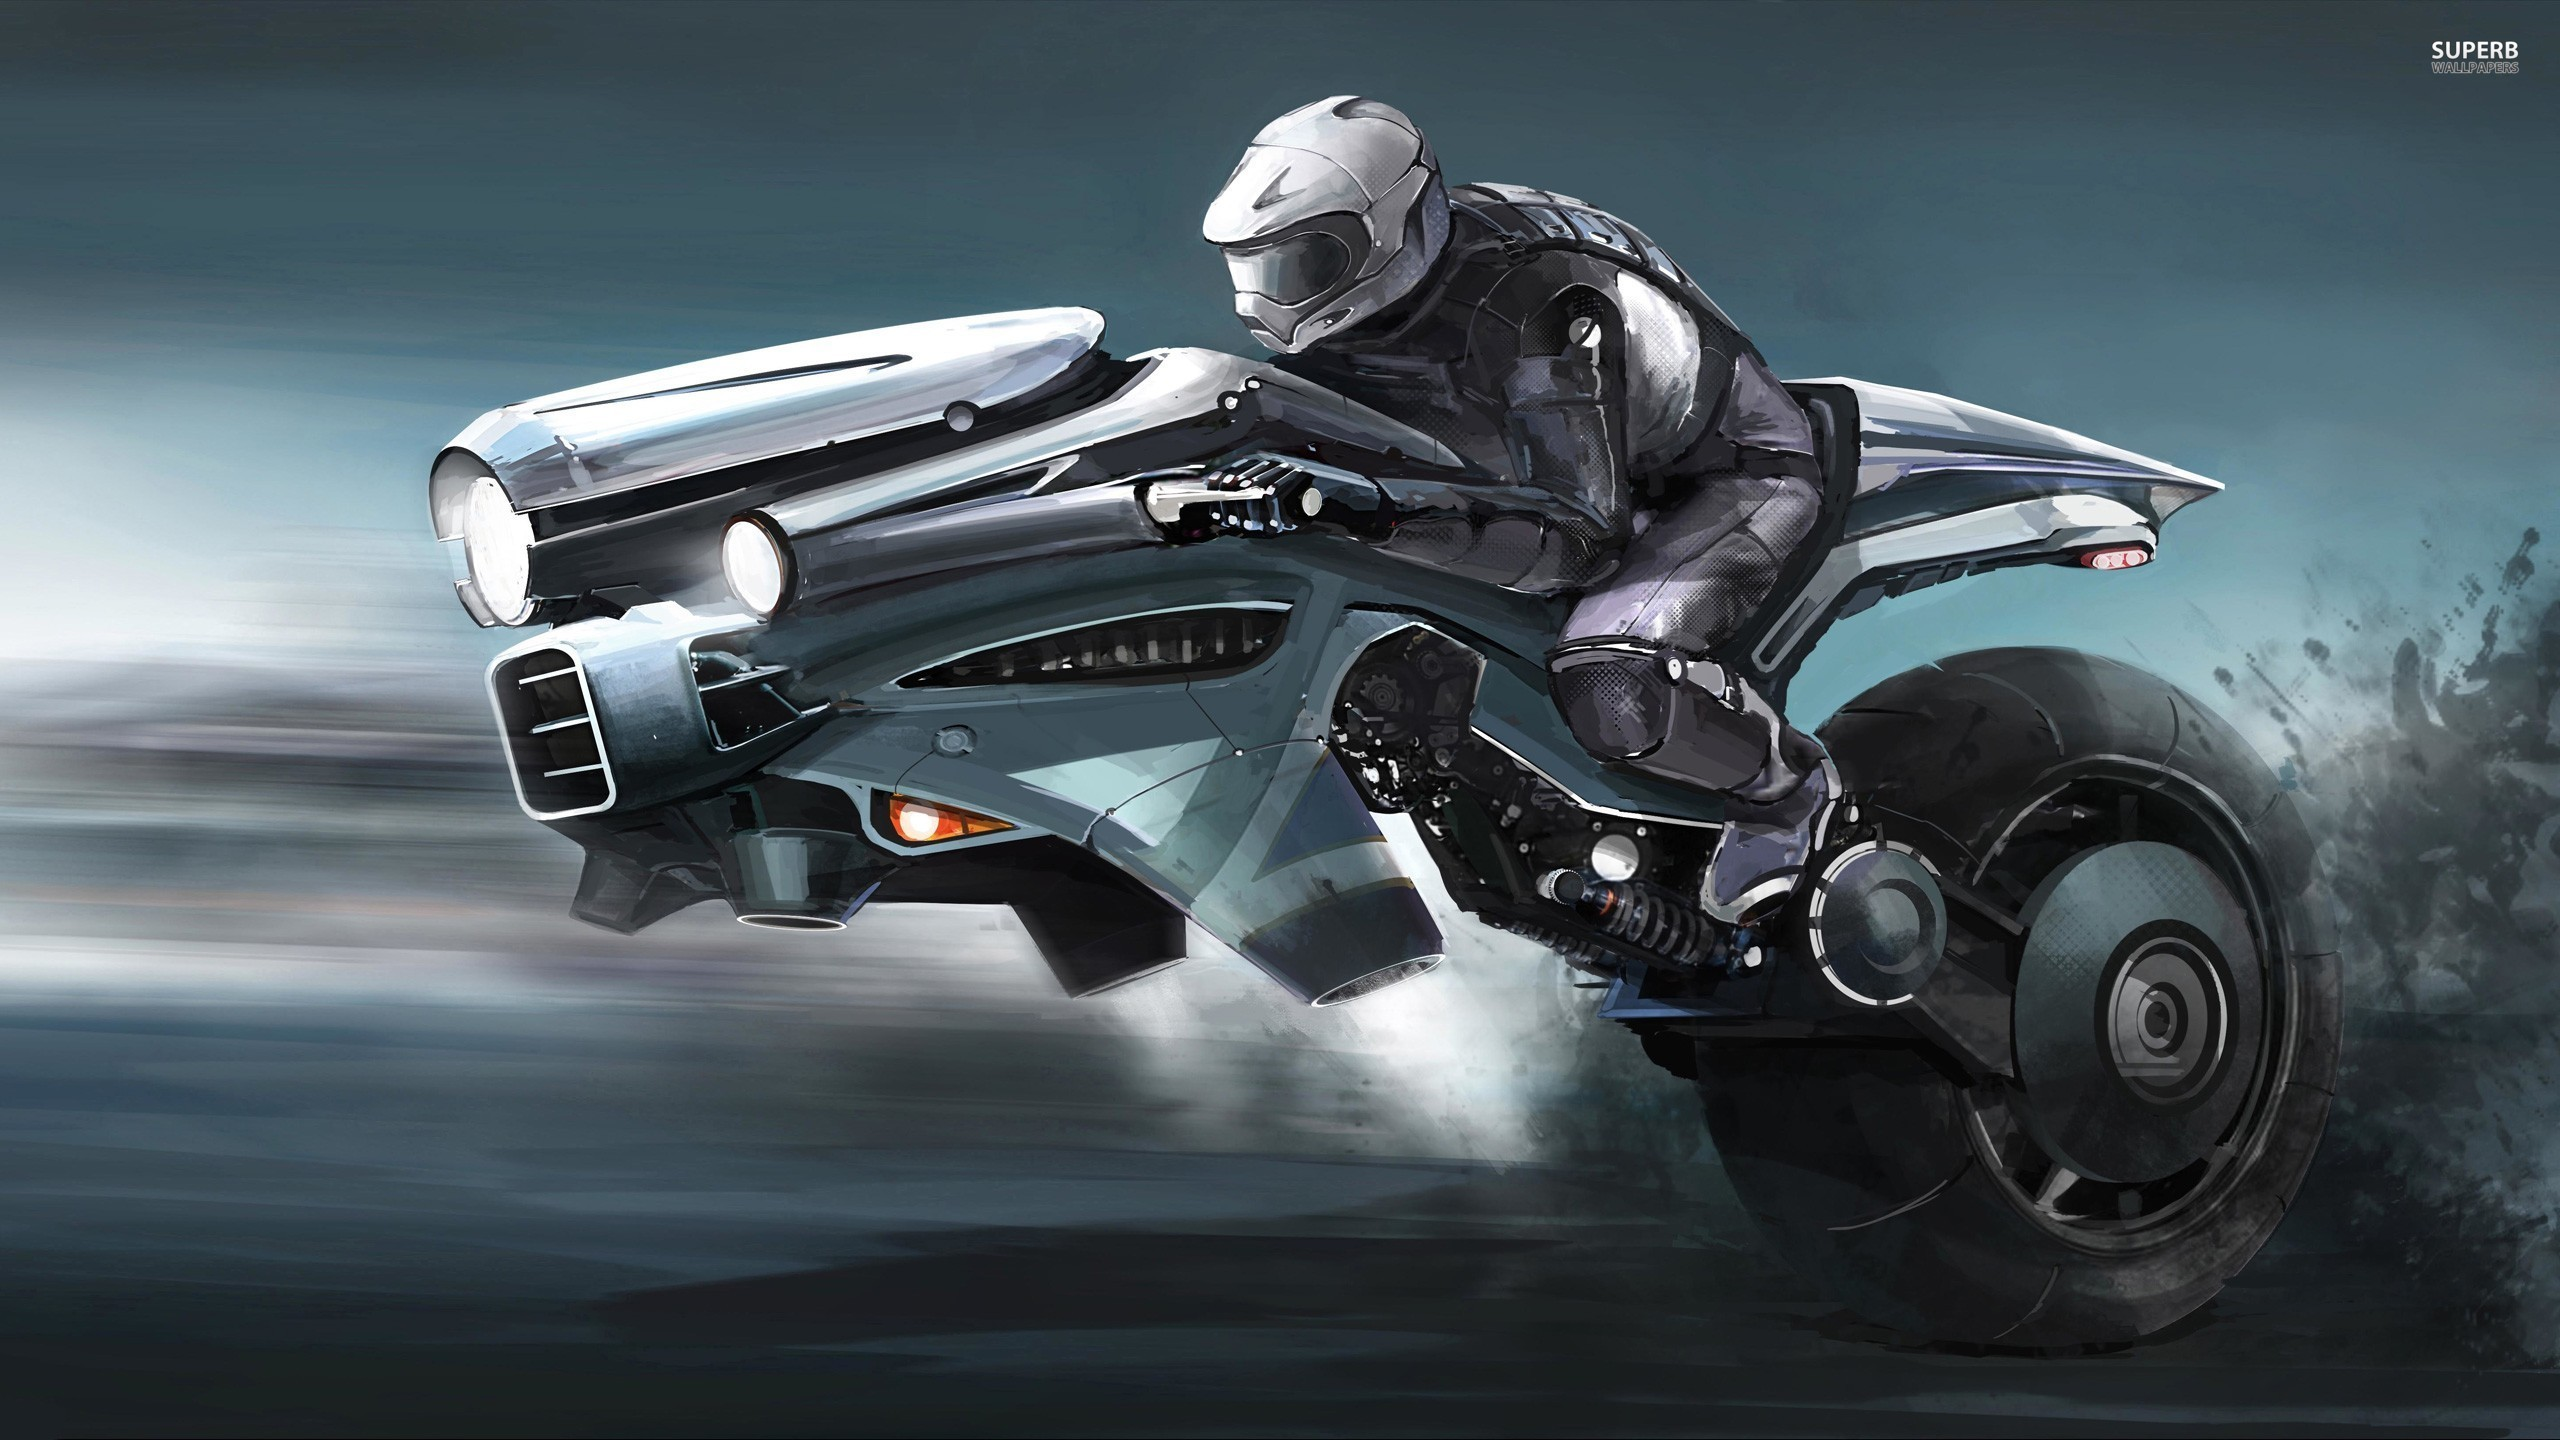 fantasy soldier future bike Wallpapers 2560x1440